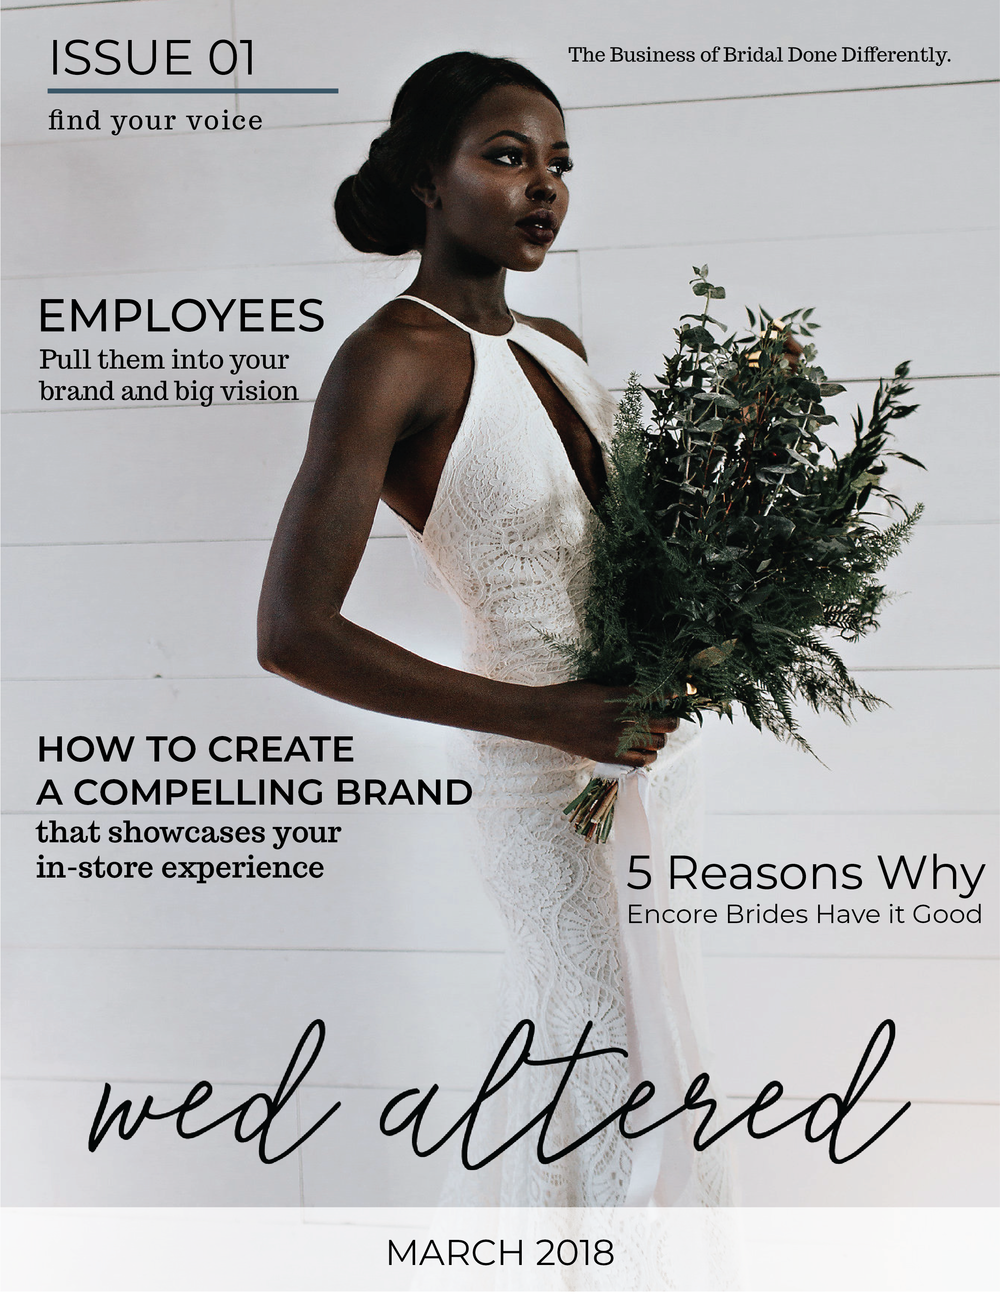 Find Your Voice - Having a clear story to tell your brides is what sets you apart from other bridal businesses and helps them fall in love with you and your dresses before they even make it through the door.